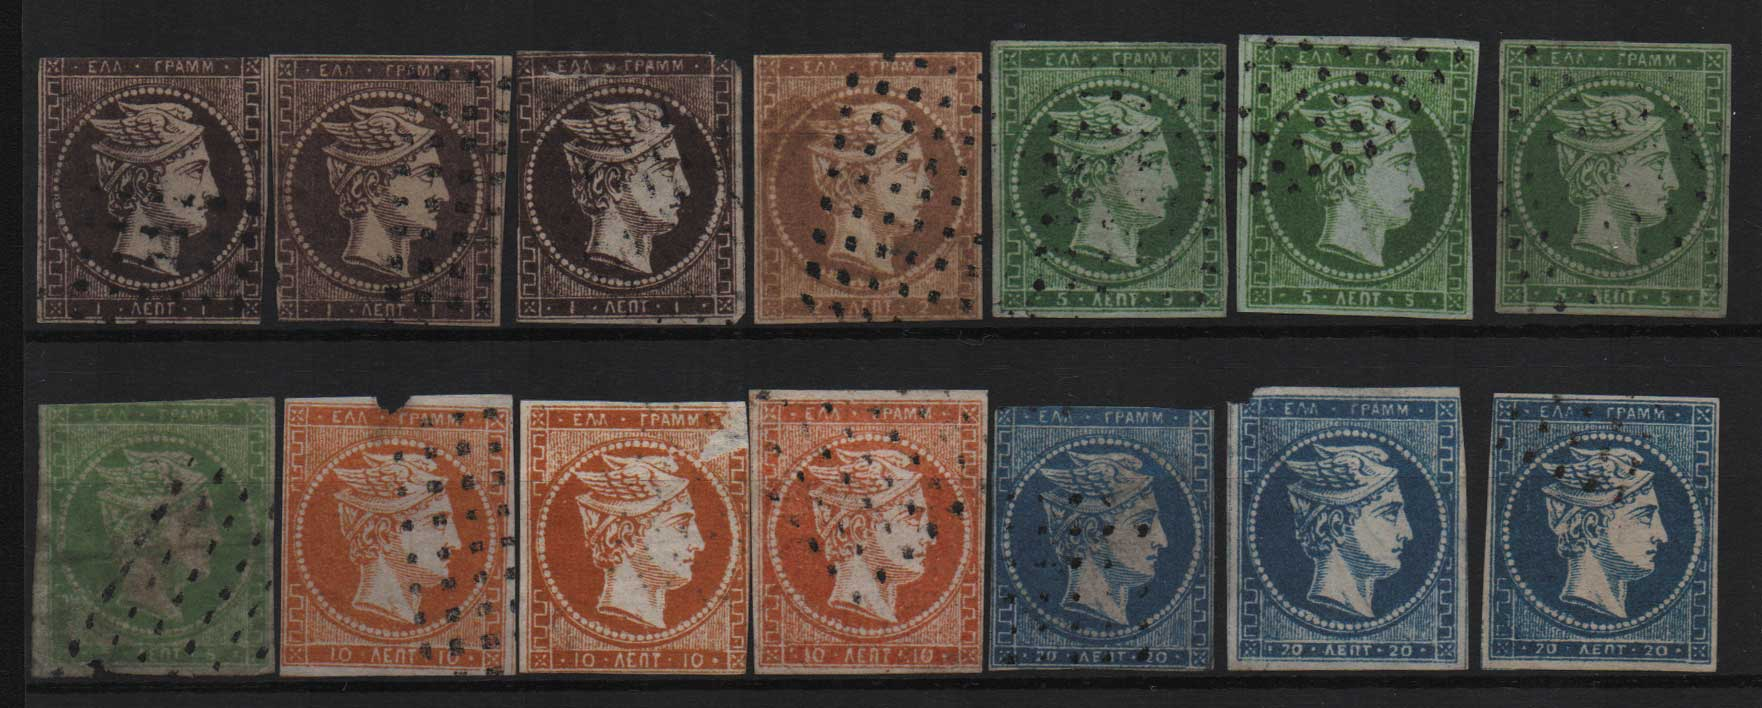 Lot 15 - - FORGERY forgery -  Athens Auctions Public Auction 67 General Stamp Sale